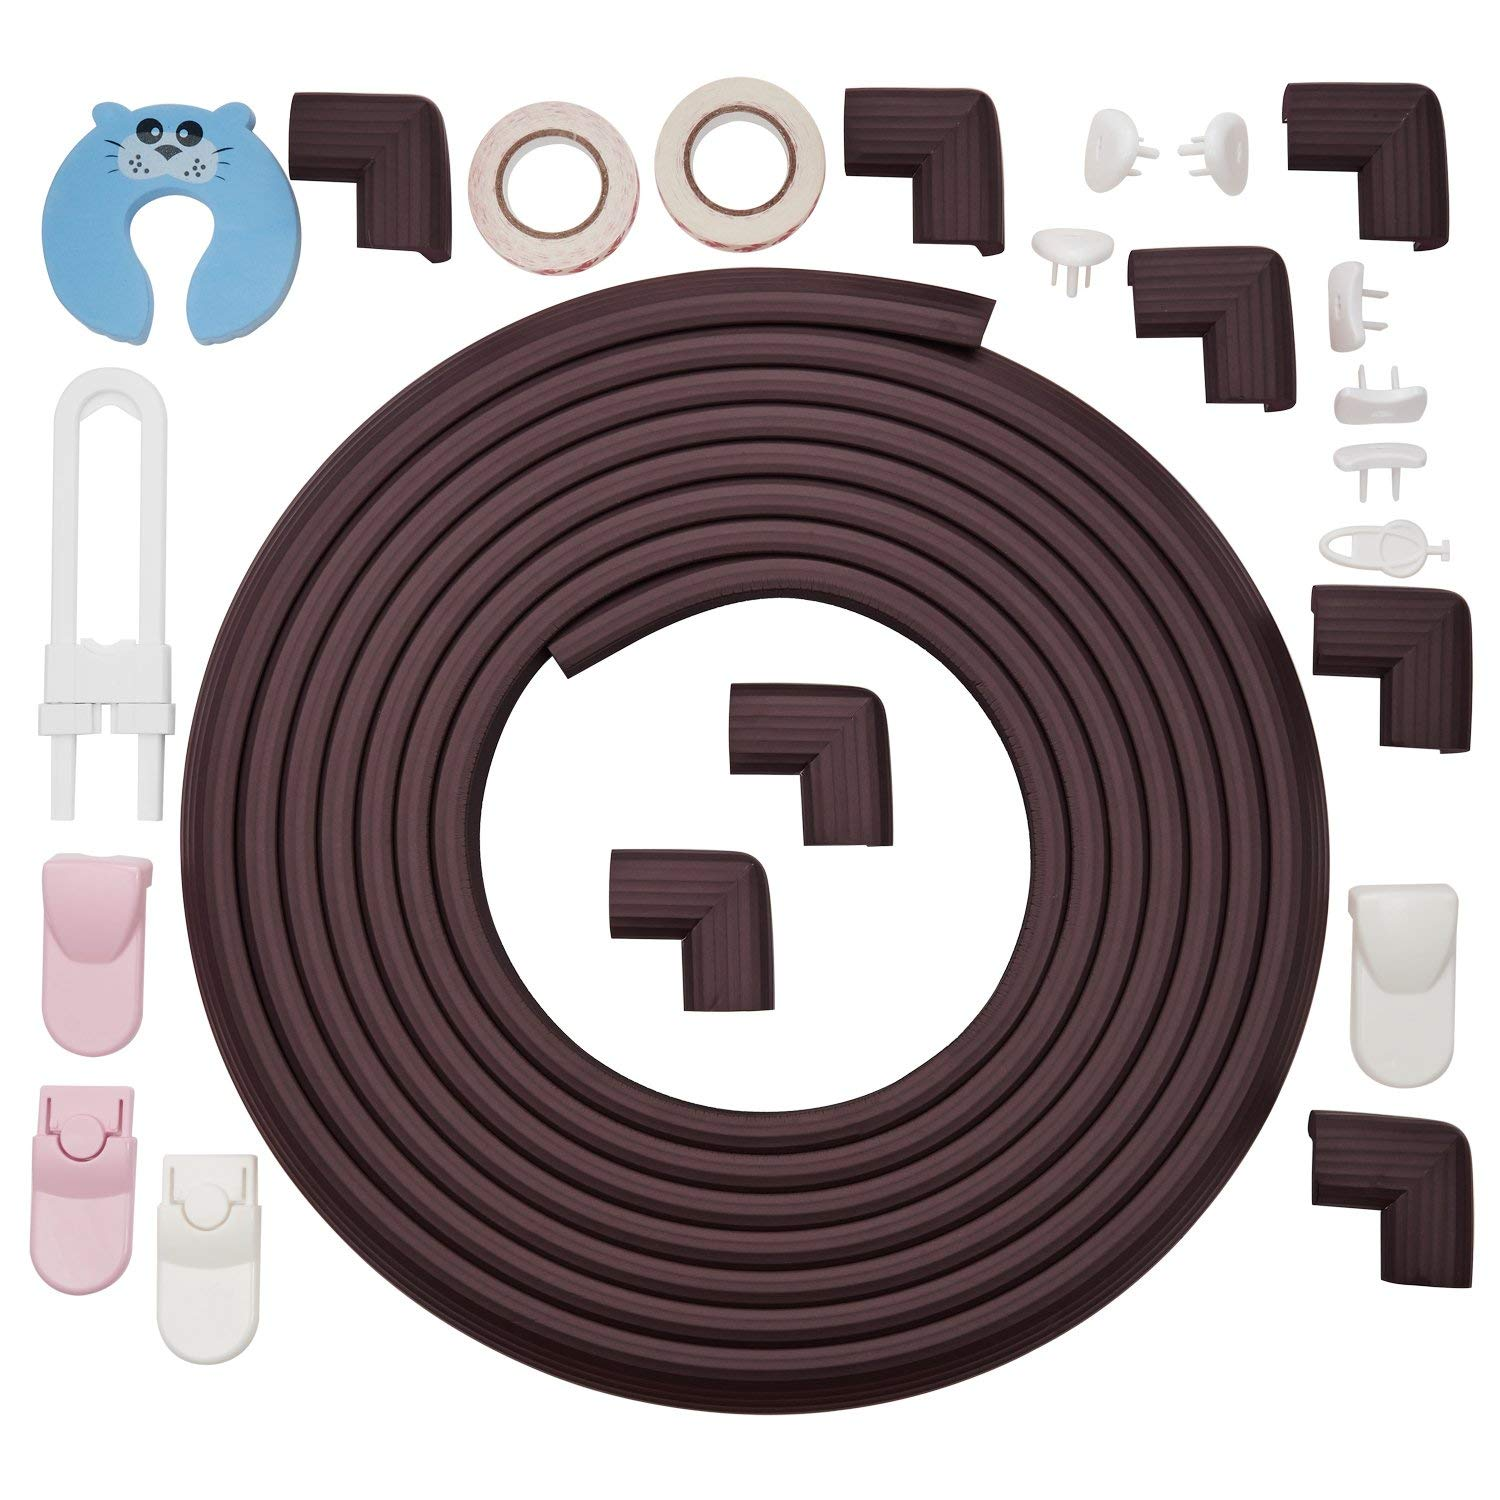 Corner Guards by Bfence Extra Large with 24ft Edge Protector, 8 corner bumpers Bonus Safety Locks, Socket Covers and Door Stopper - Babyproofing Table Edge Guards (Dark Brown)